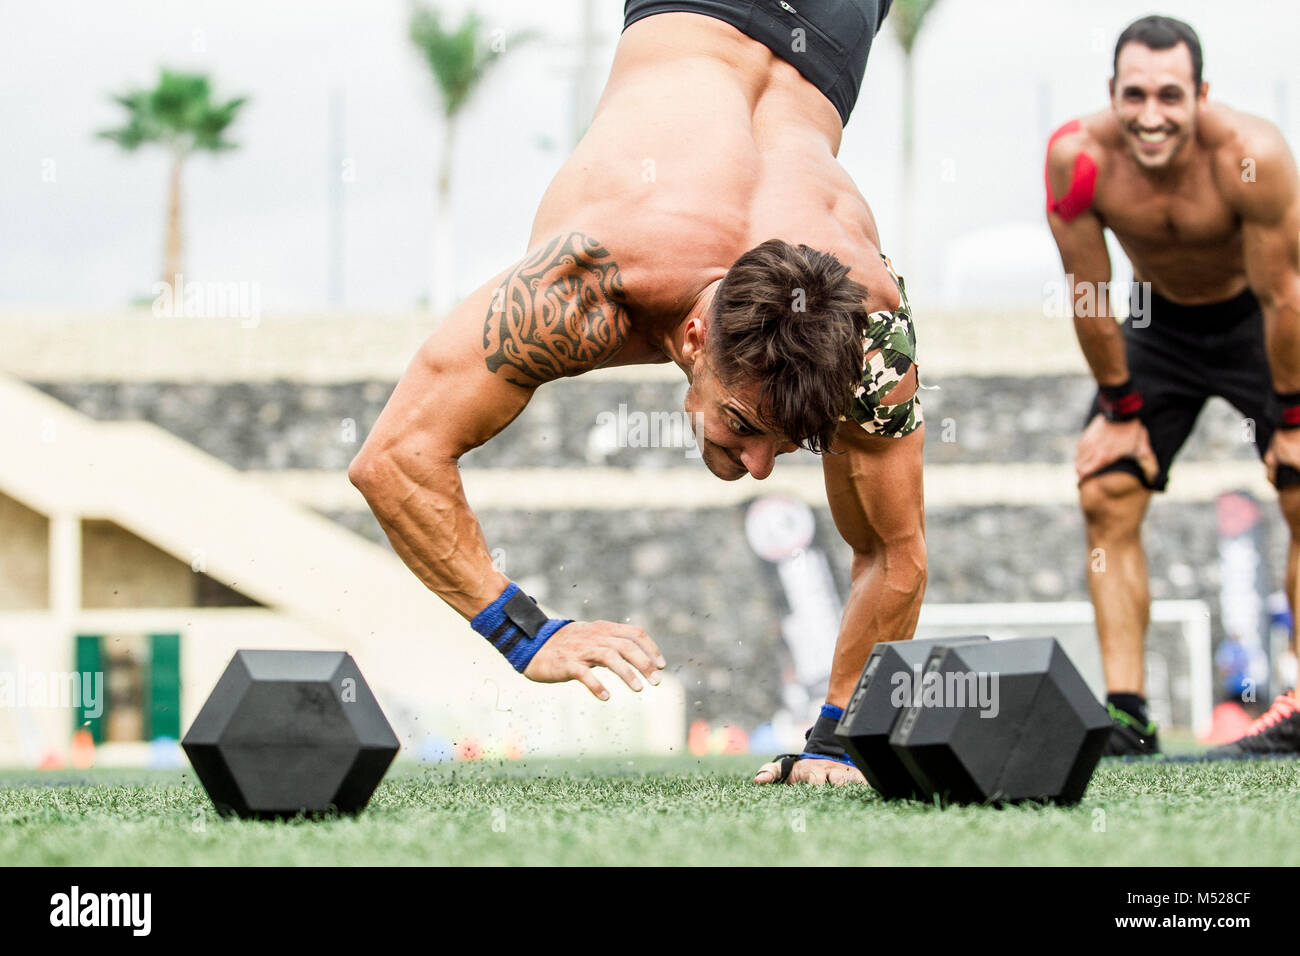 Man doing handstand during crossfit competition, Tenerife, Canary Islands, Spain - Stock Image